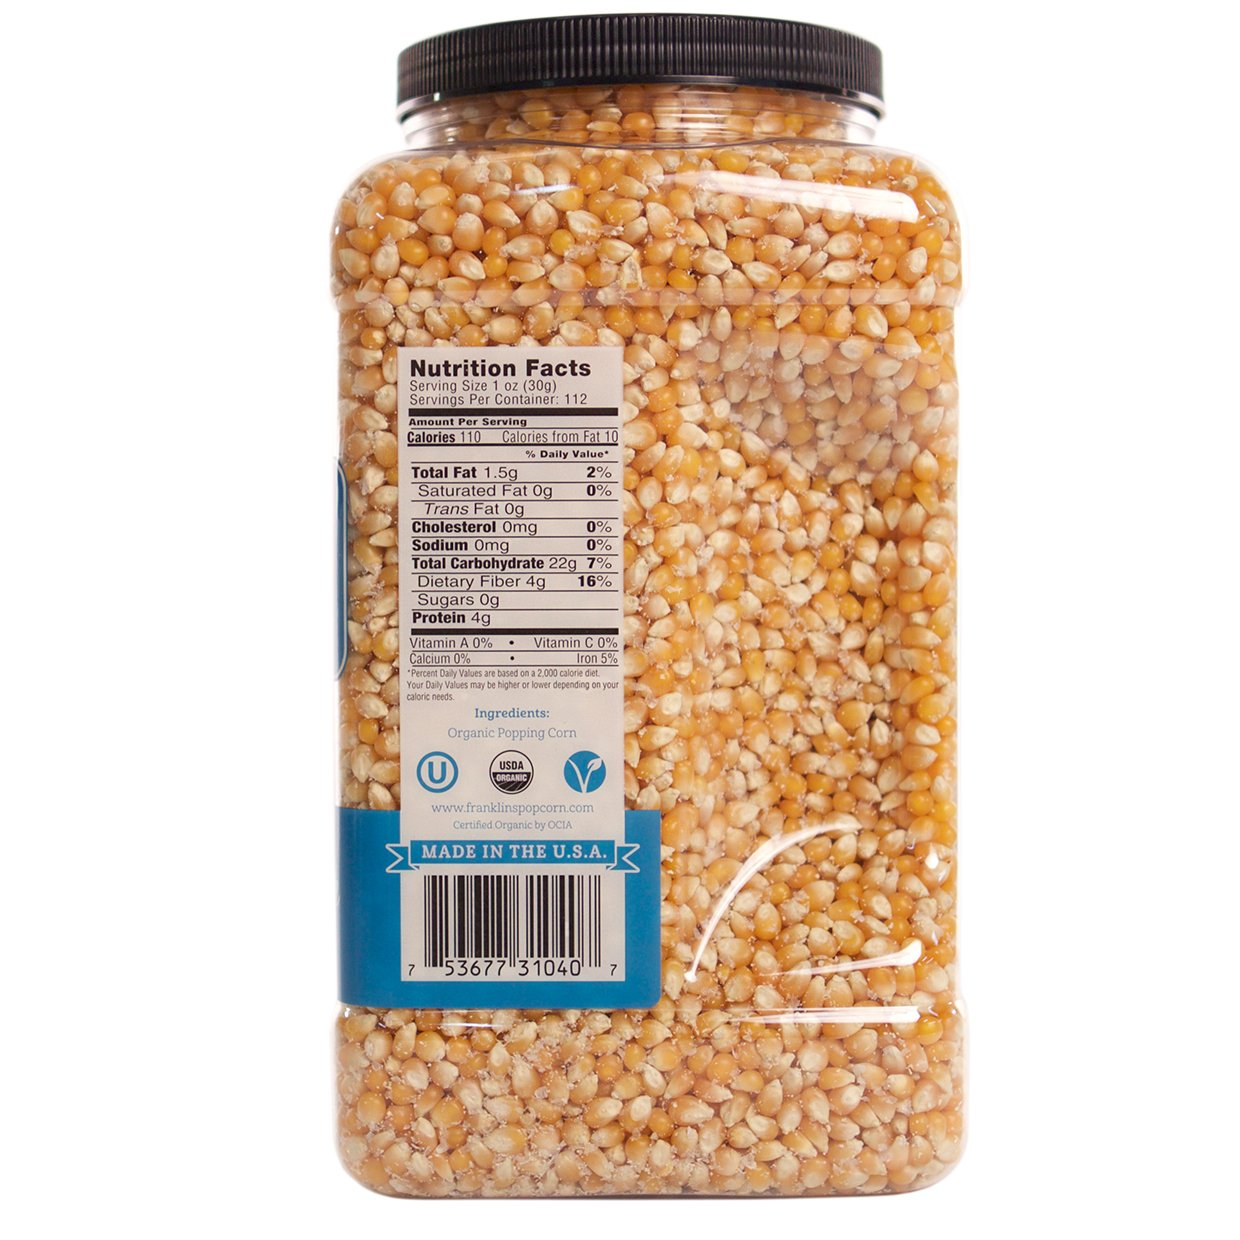 Franklin's Organic Popping Corn (7 lbs). Make Movie Theater Popcorn at Home. by Franklin's Gourmet Popcorn (Image #2)